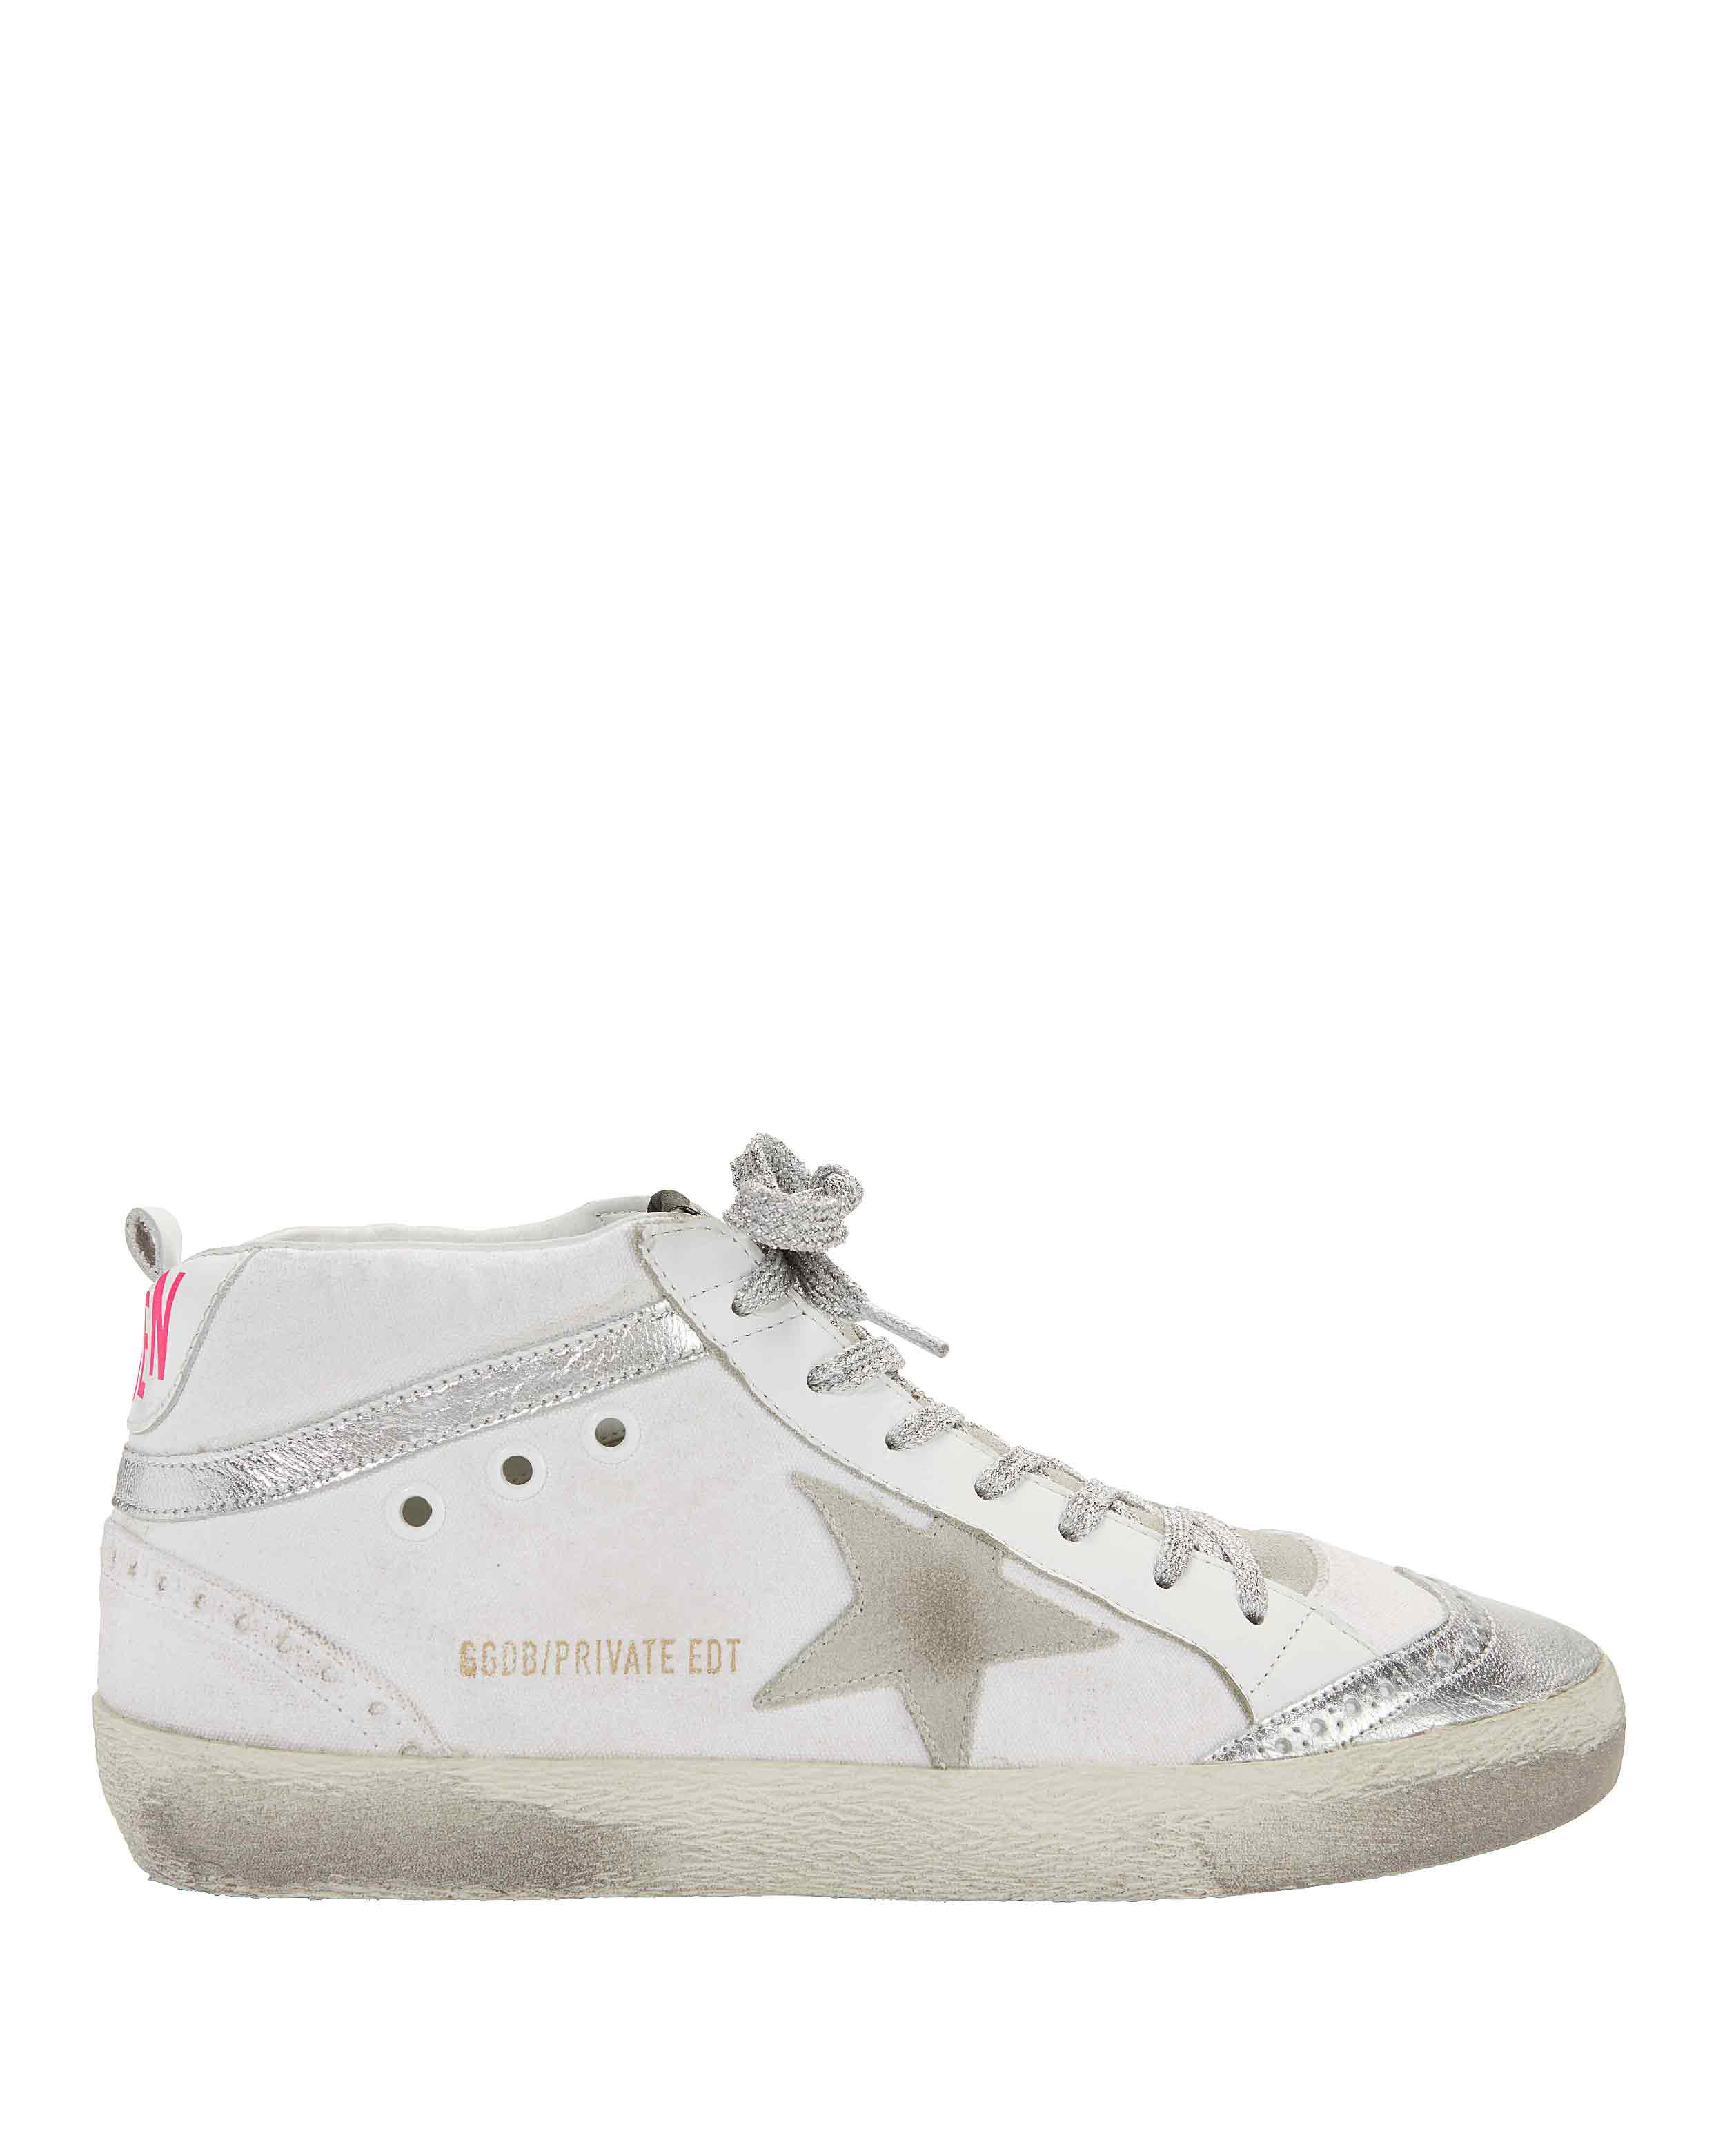 0cd7aaece55bd Lyst - Golden Goose Deluxe Brand Mid Star Pink Back Leather Sneakers ...